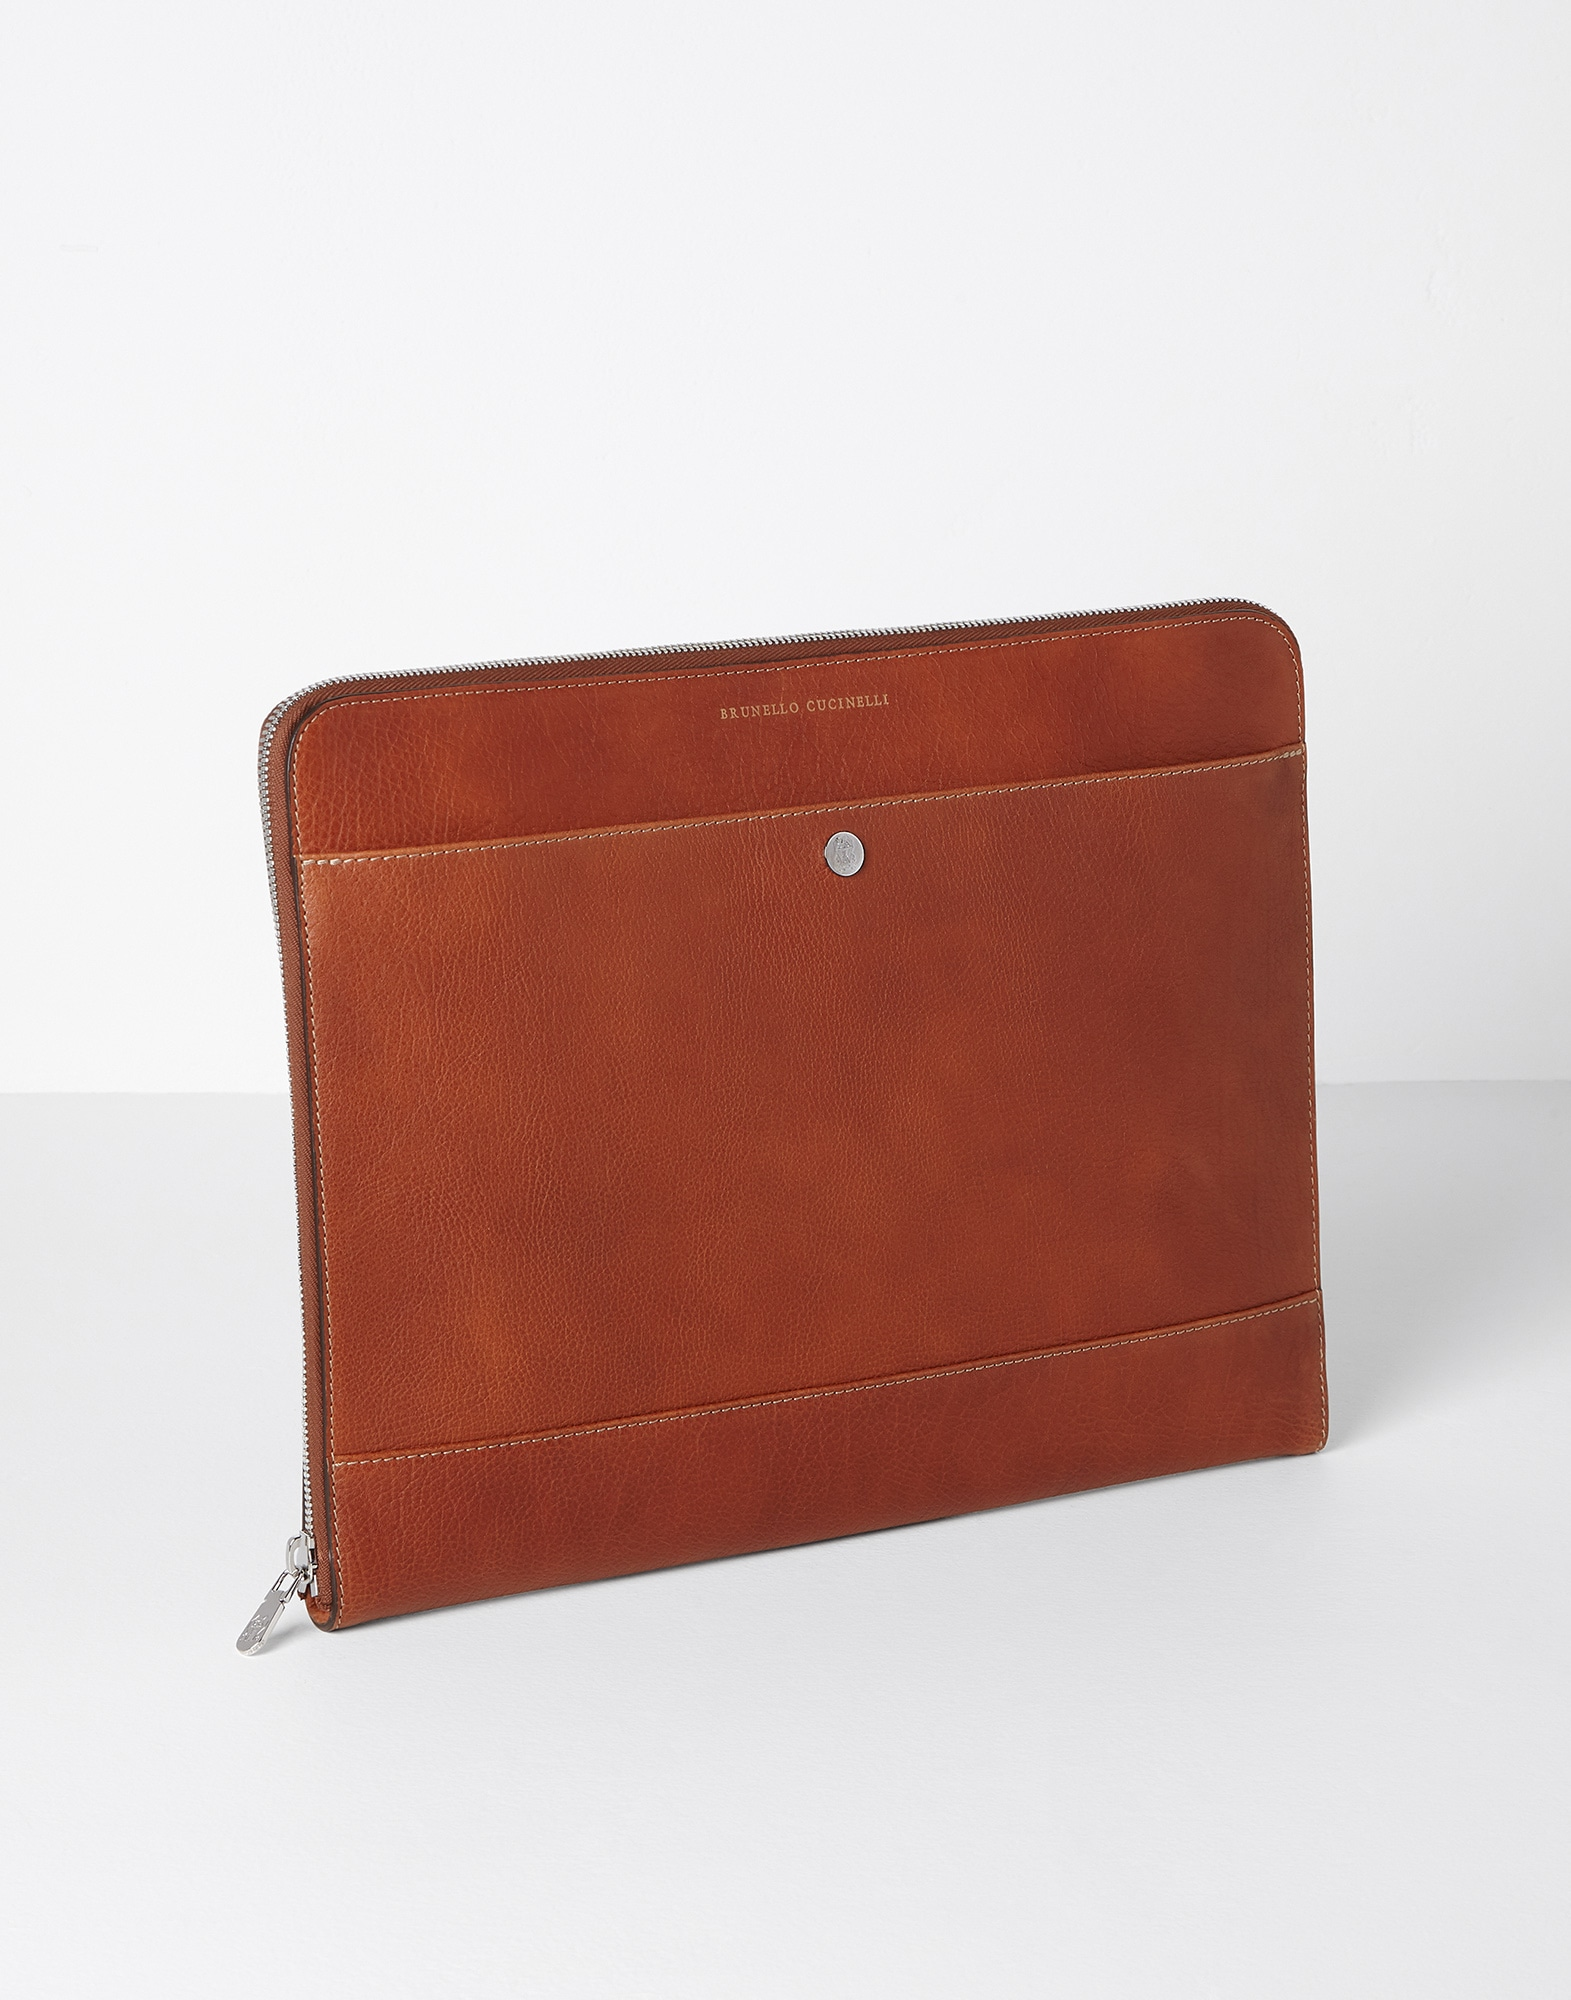 Document Holder Rum Man 0 - Brunello Cucinelli